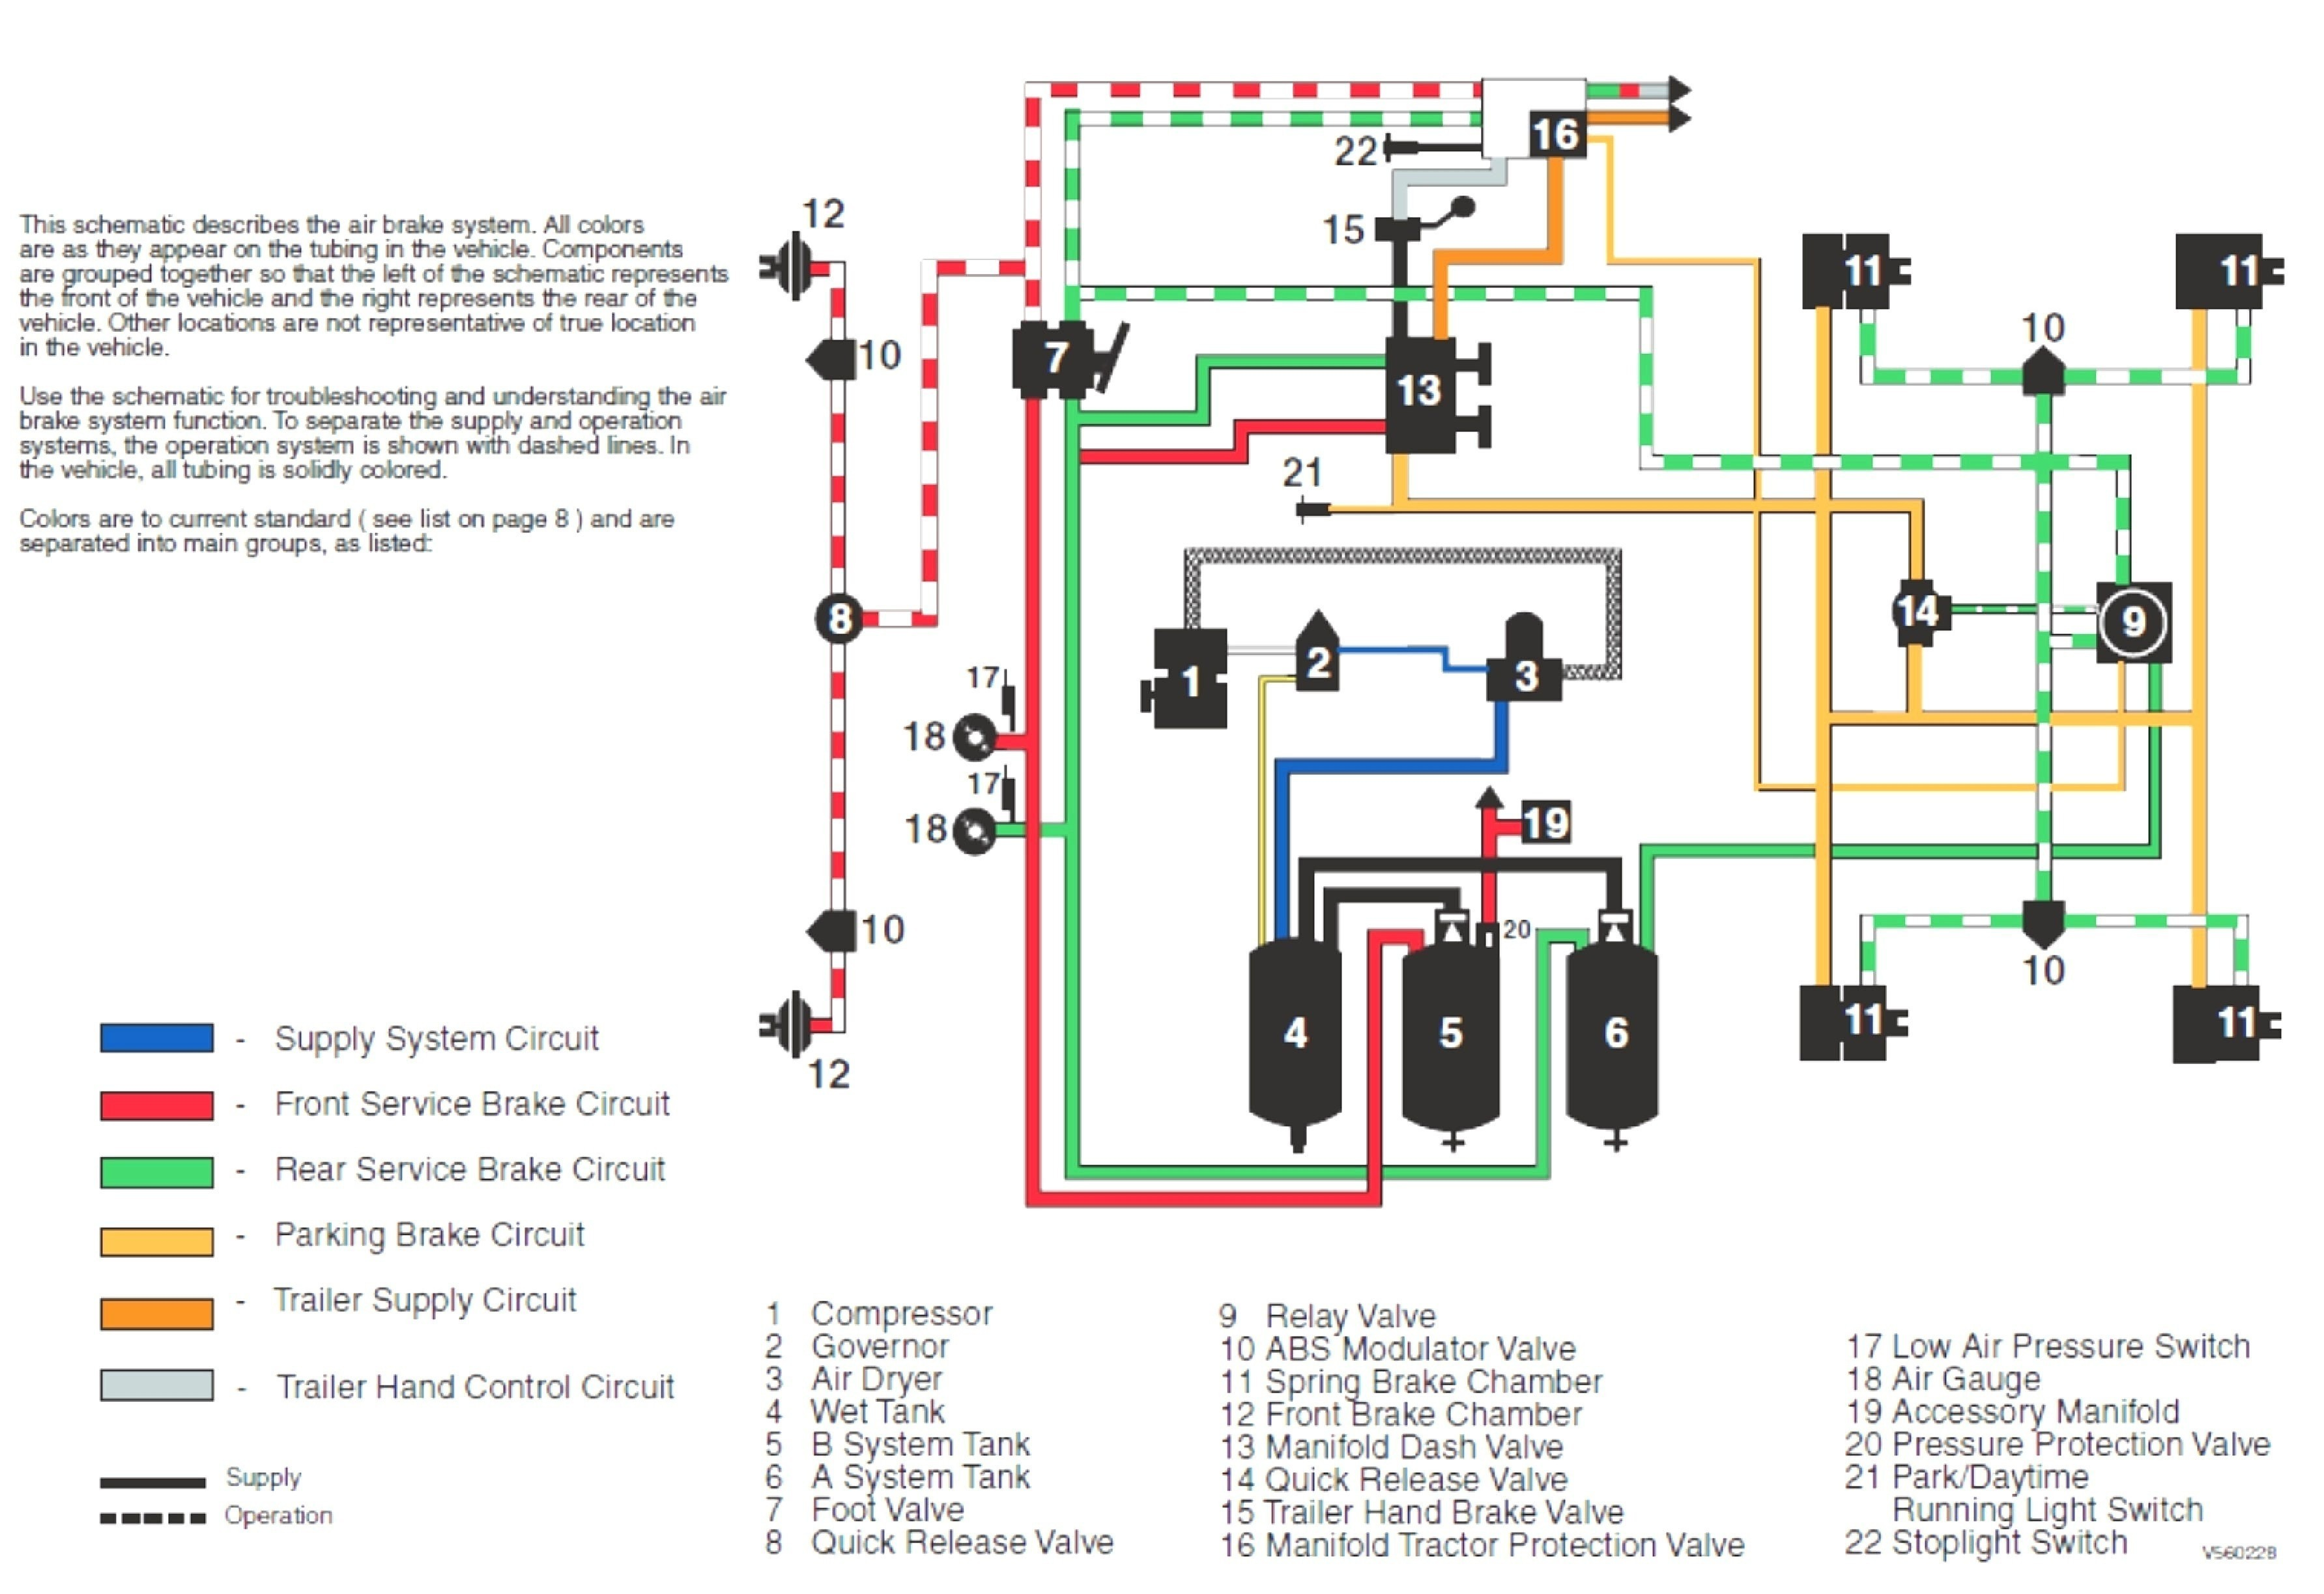 Breakaway Switch Wiring Diagram Wiring Diagram for Lights A Trailer New Peerless Light Switch Of Breakaway Switch Wiring Diagram